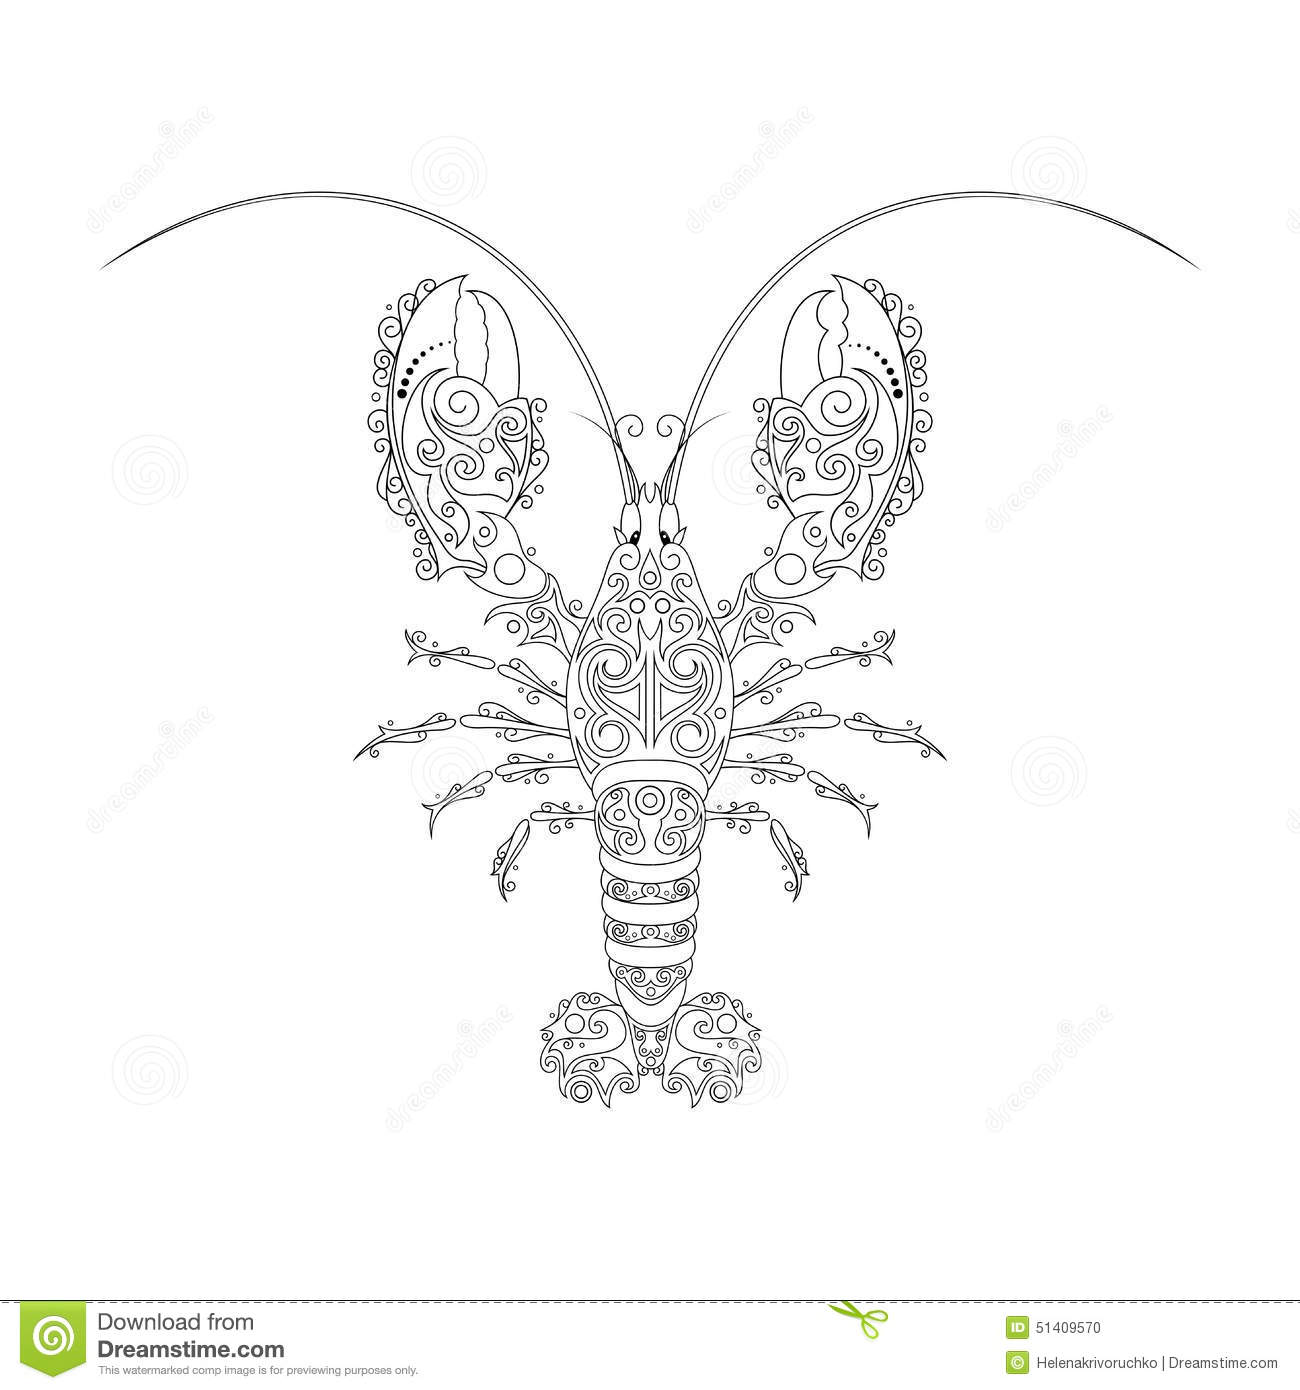 Monochrome Drawing Wolverine Patterns Line Art further Stock Vector Pirate Skull Tattoo Outline moreover Stock Illustration Zentangle Giraffe Head Totem Adult Anti Stress Coloring Page Art Therapy Illustration Doodle Style Vector Monochrome Image60164171 also Vector Hand Drawn Lobster additionally Drawing  pass. on stock illustration vector vintage crab drawing hand drawn monochrome